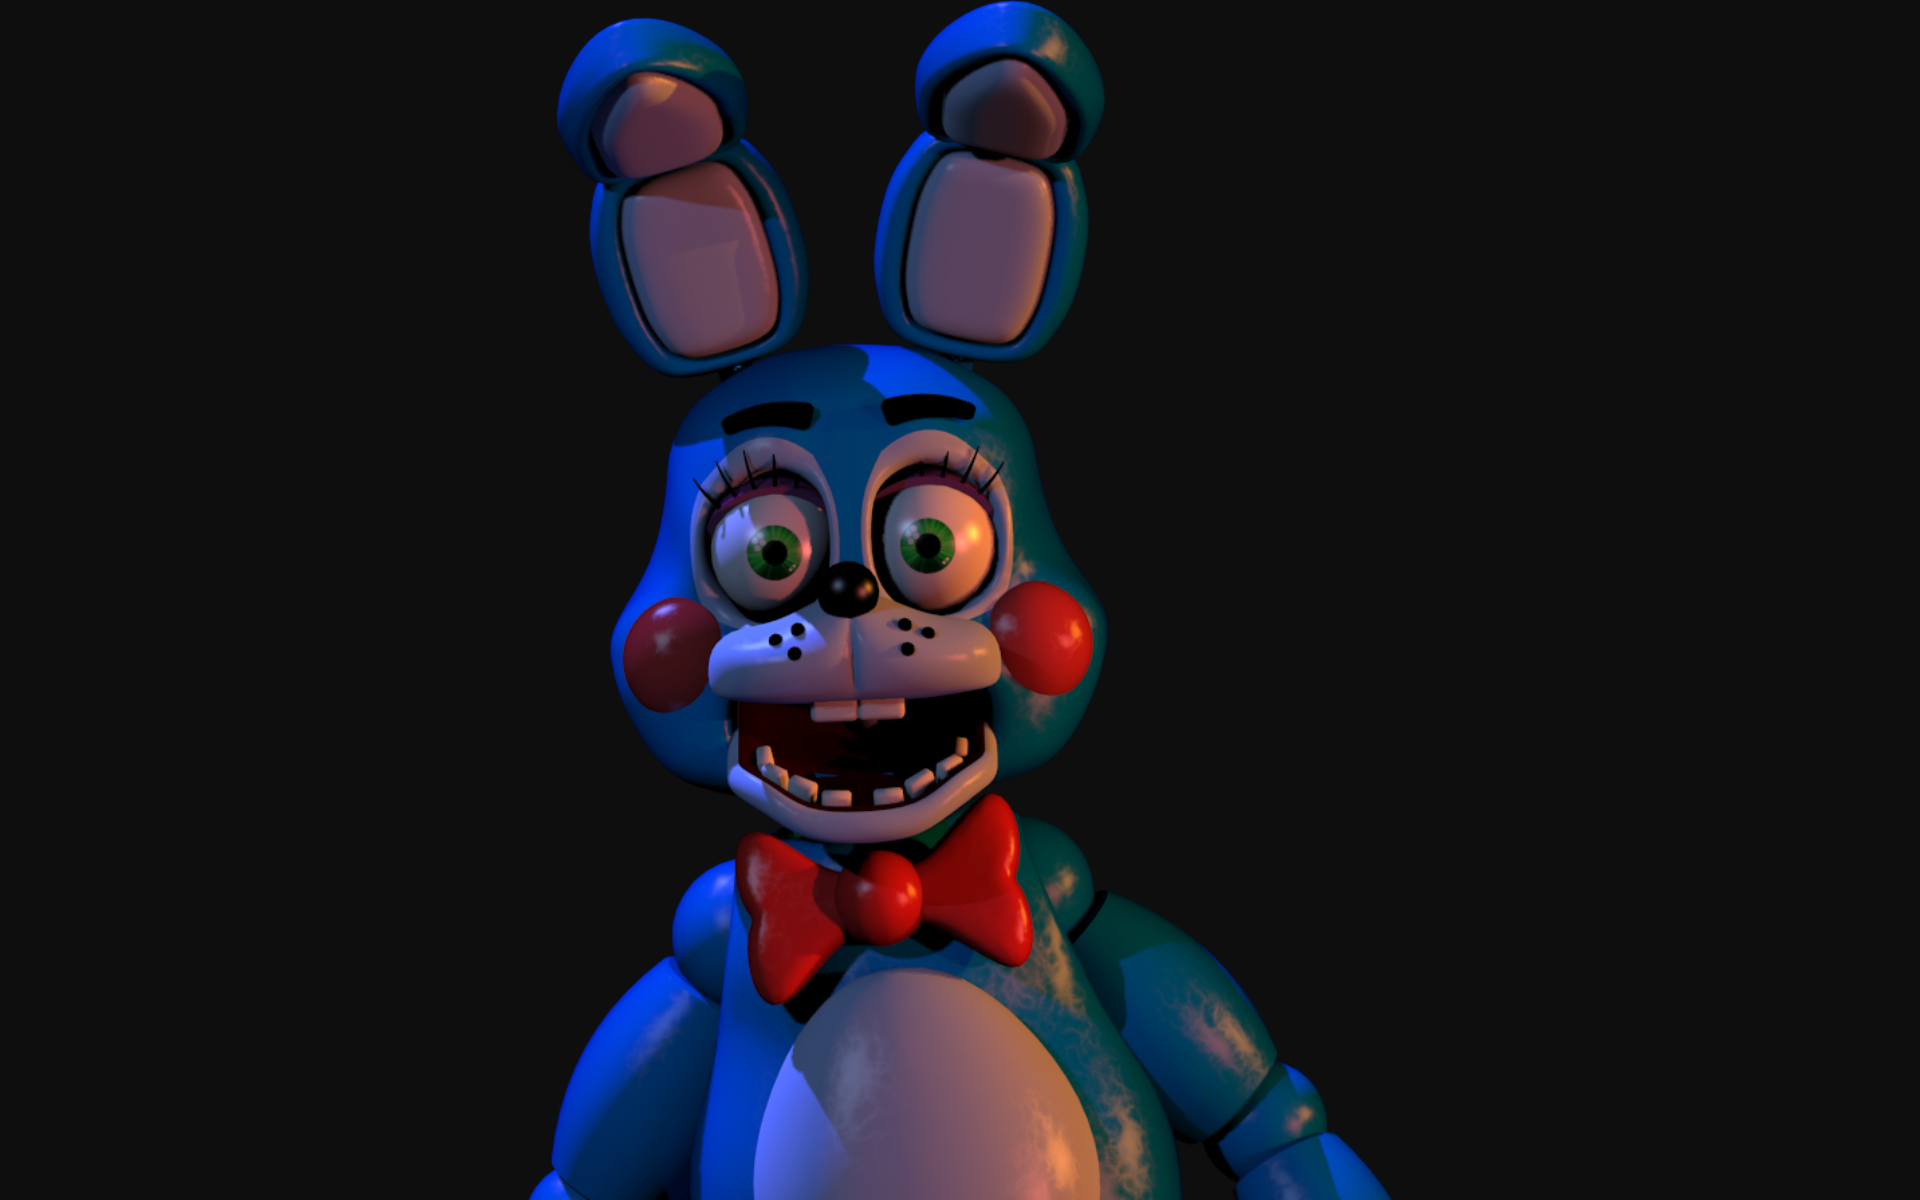 ToyBonnie1987